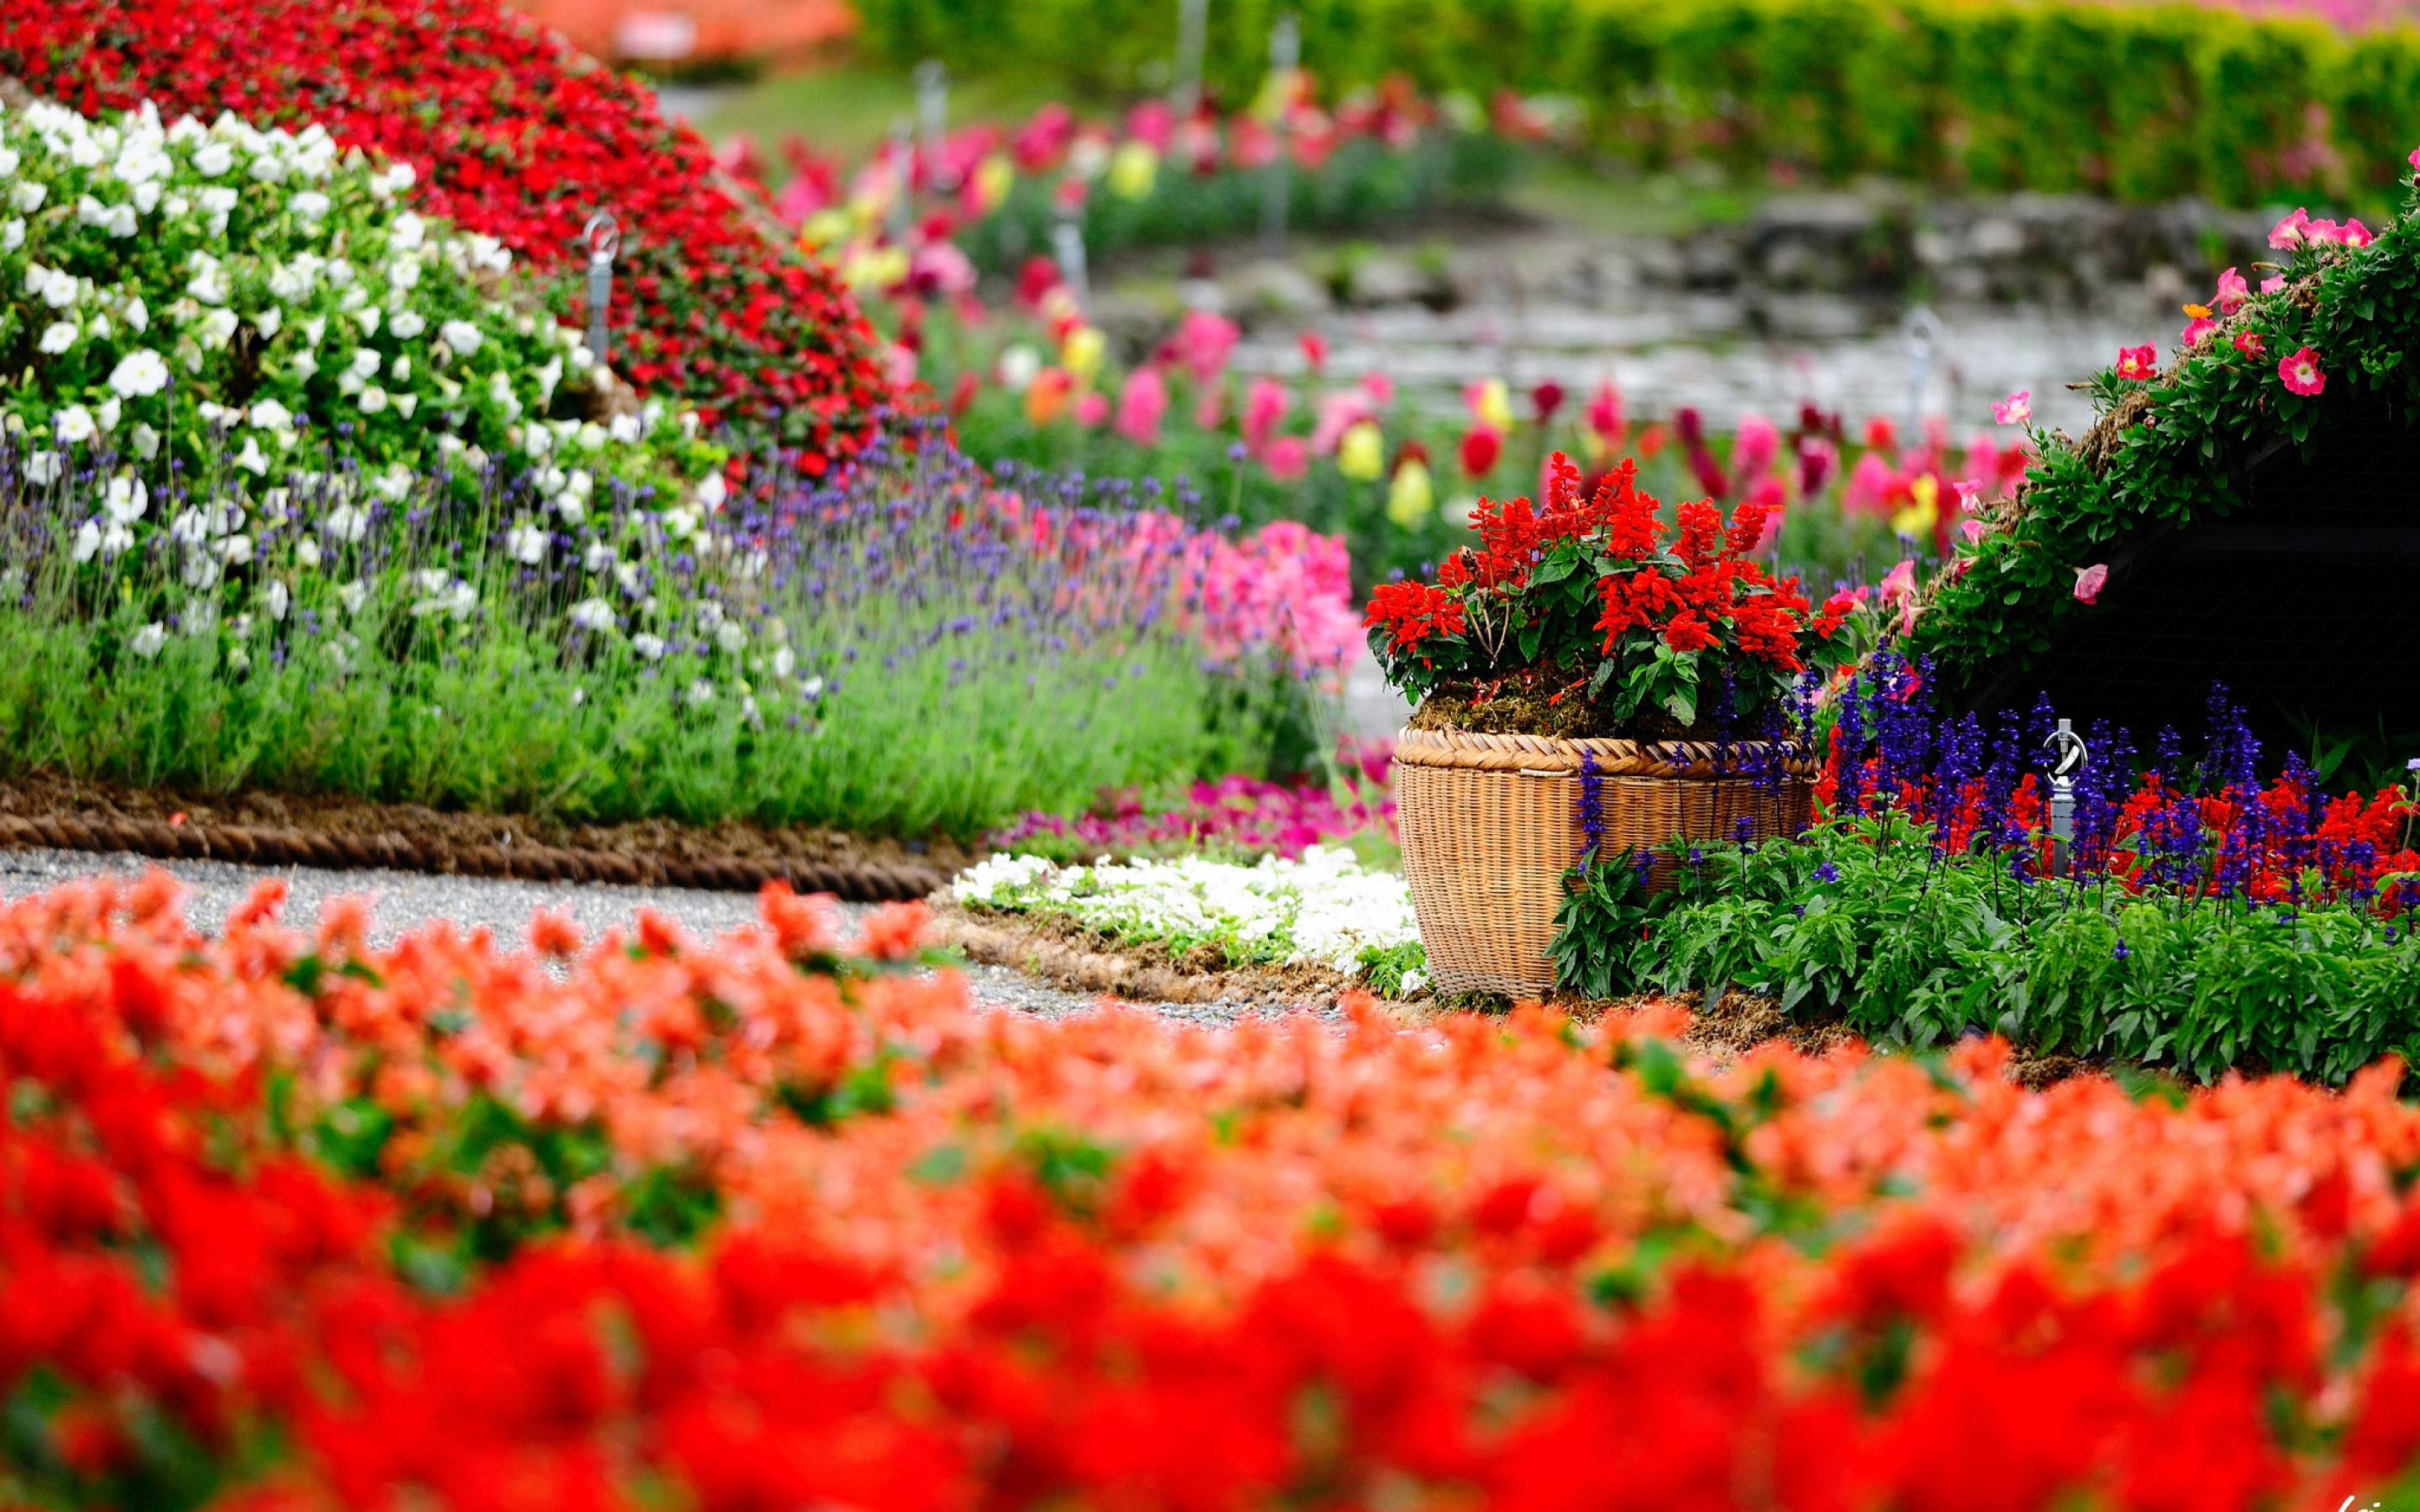 Garden Wallpapers Full HD wallpaper search